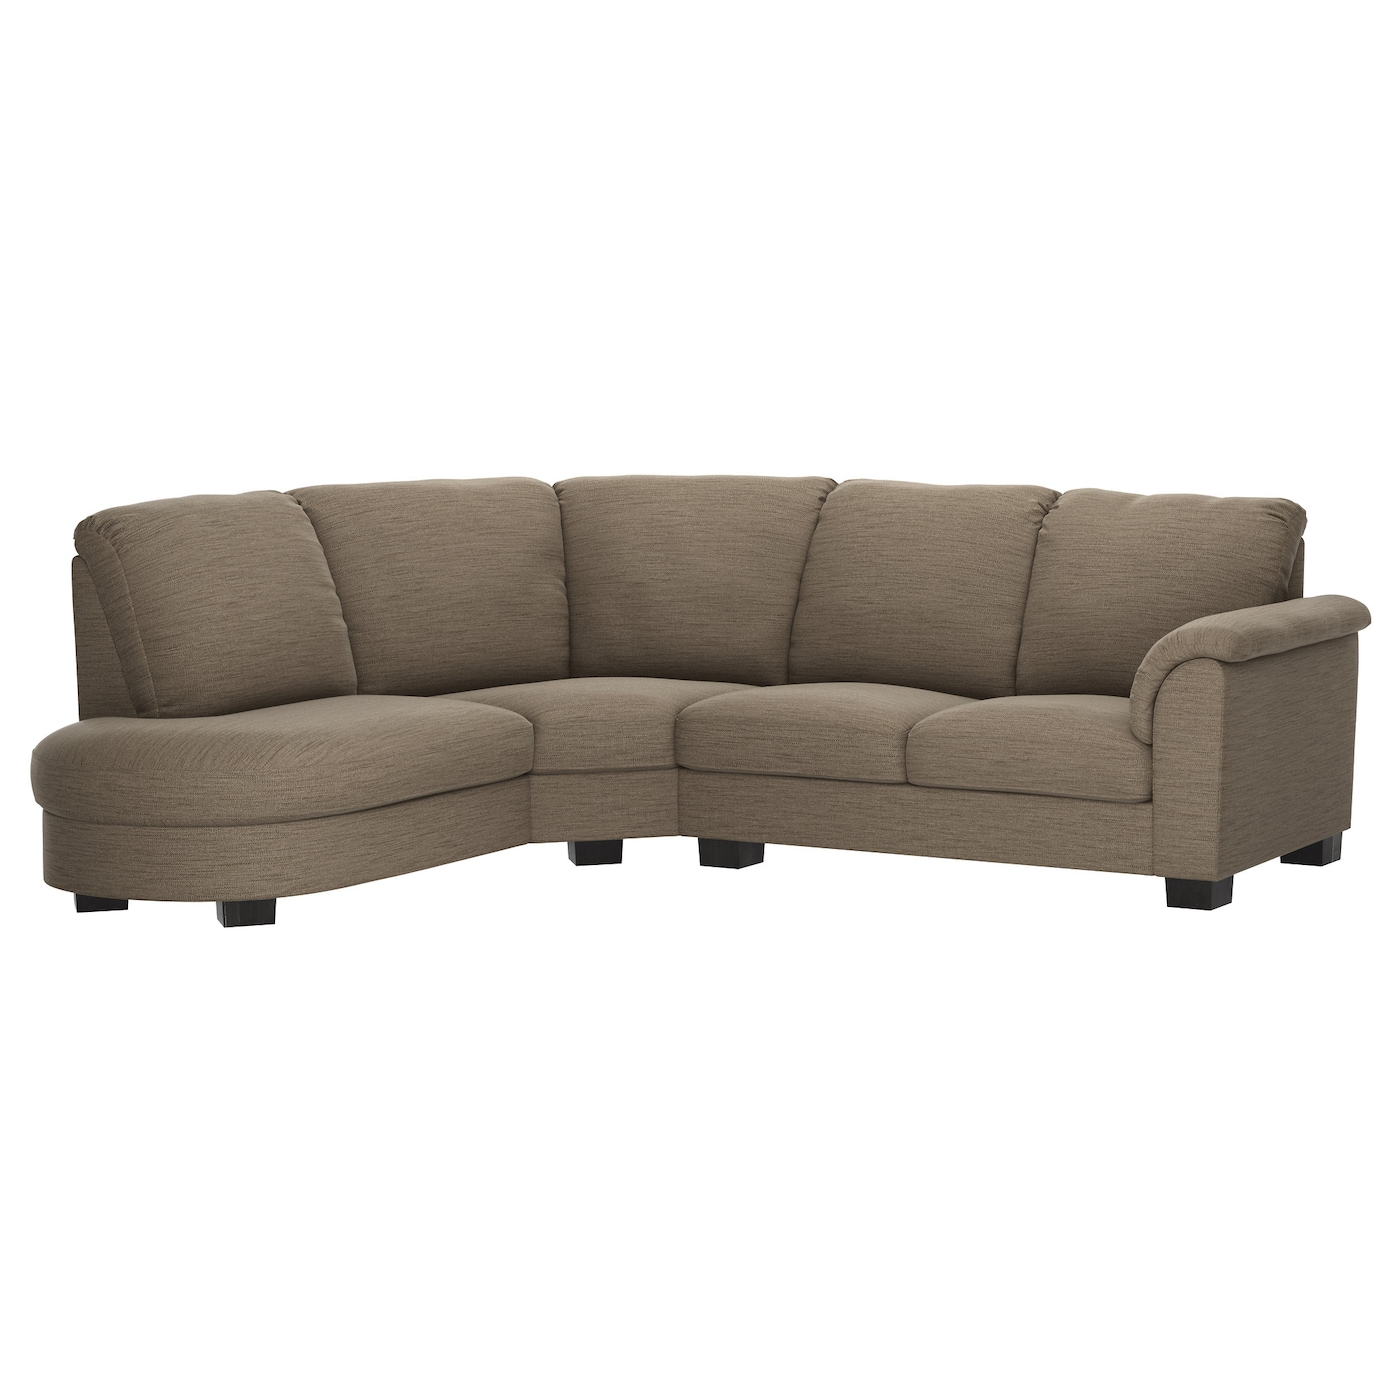 Tidafors corner sofa with arm right hensta light brown ikea - Sofas en esquina ...